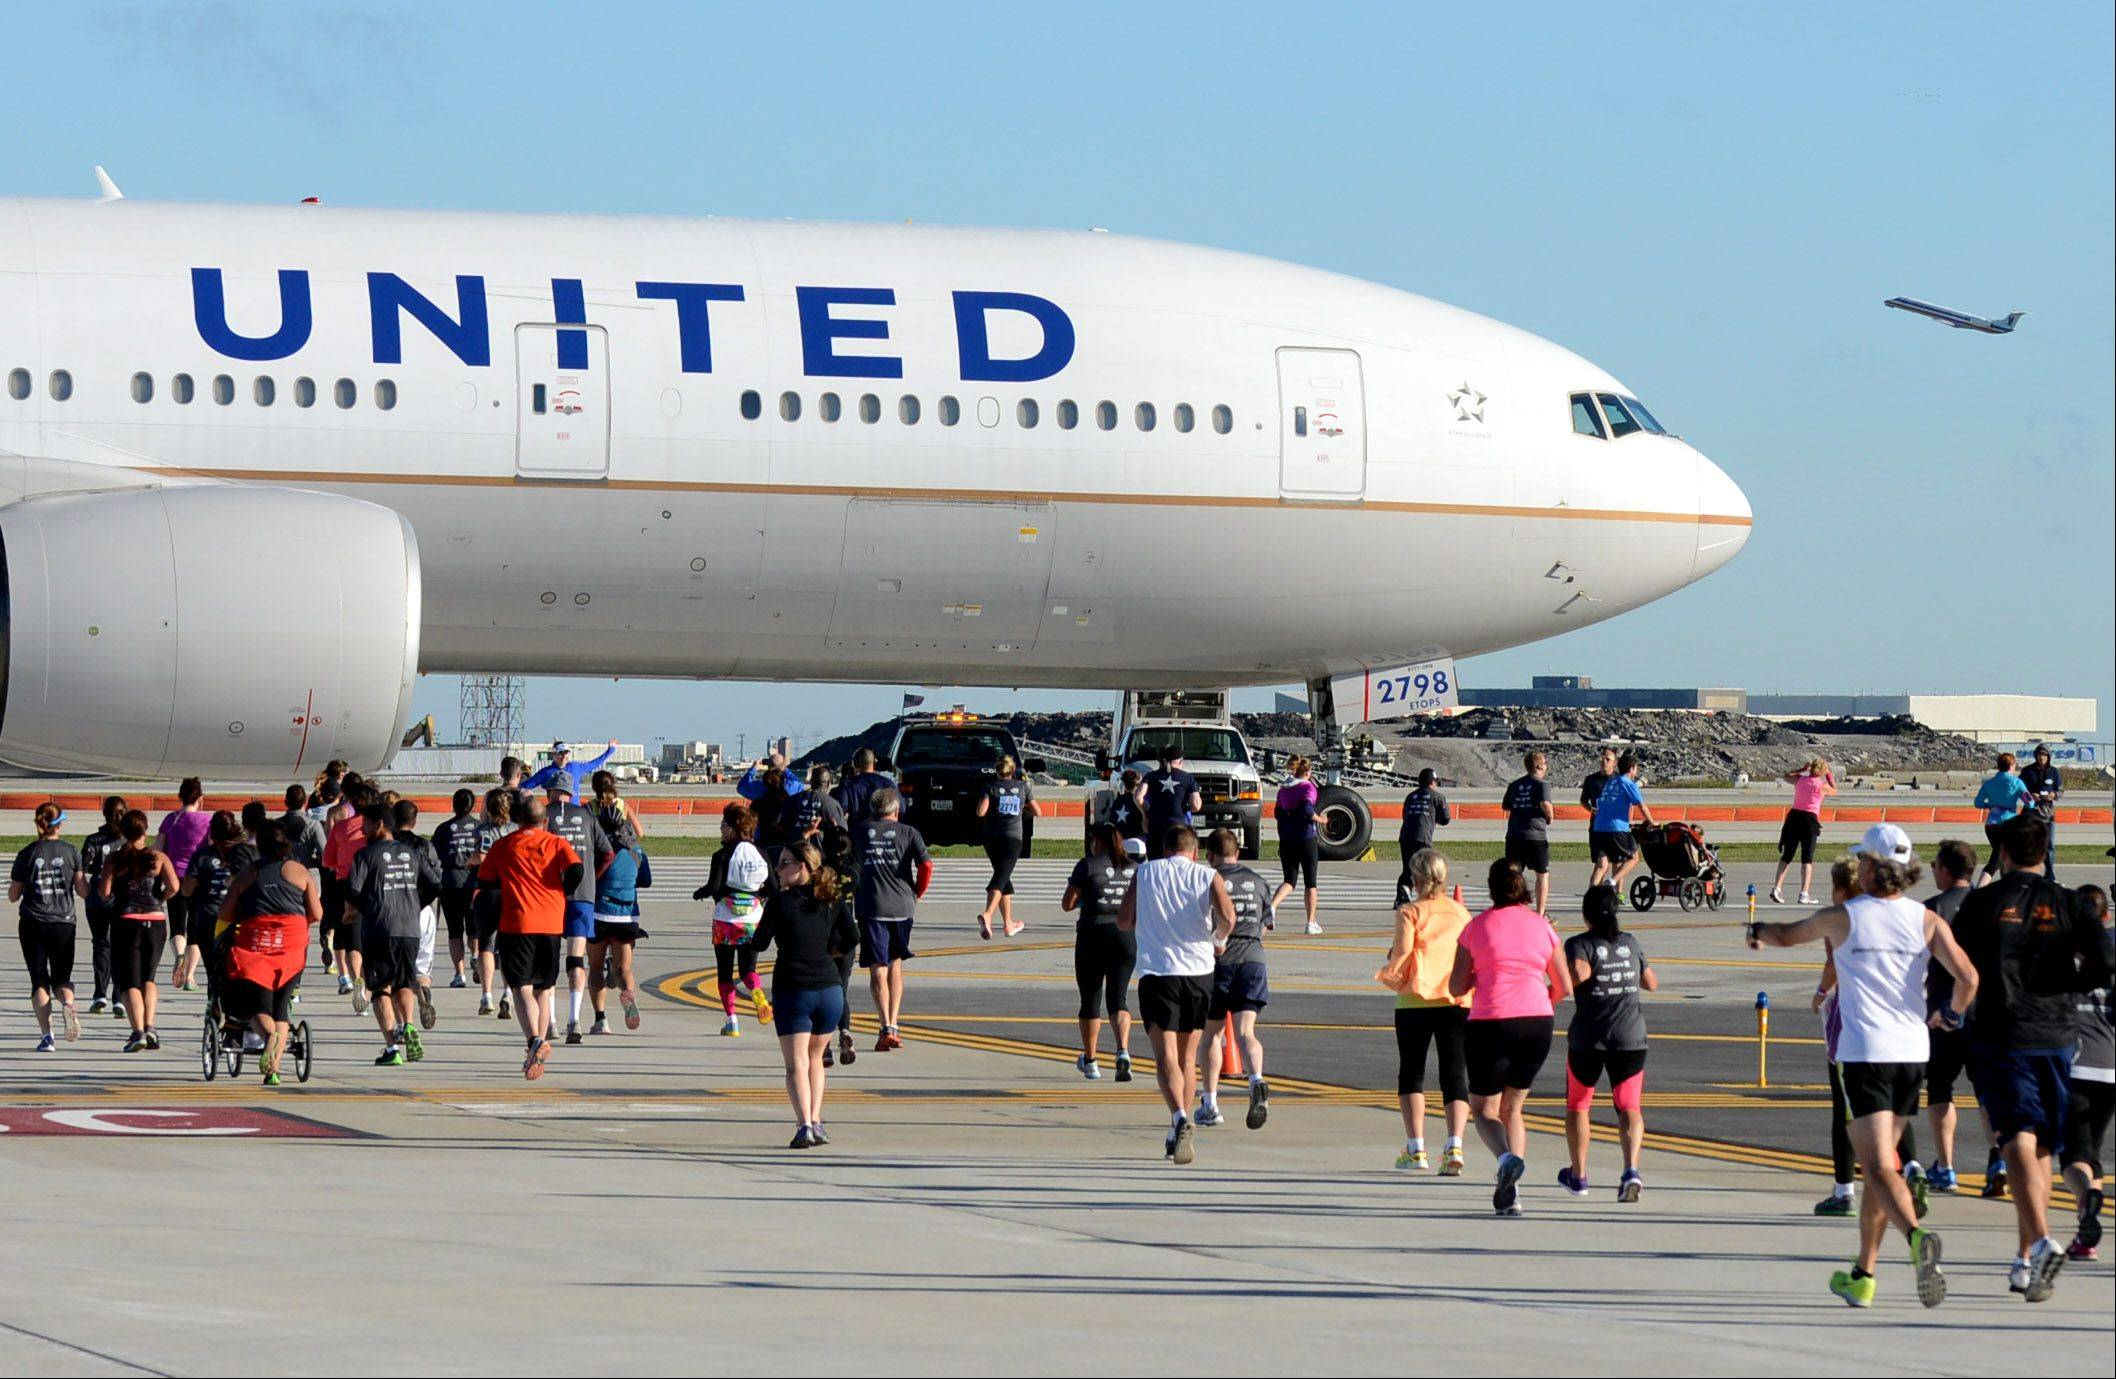 5K runners approach a parked Boeing 777 on their route during the O'Hare Run on the Runway 5K and 10K runs Sunday. The races took place on new Runway 10C-28C before it opens to air traffic on October 17, 2013. Proceeds from the event will benefit the Wounded Warrior Project.